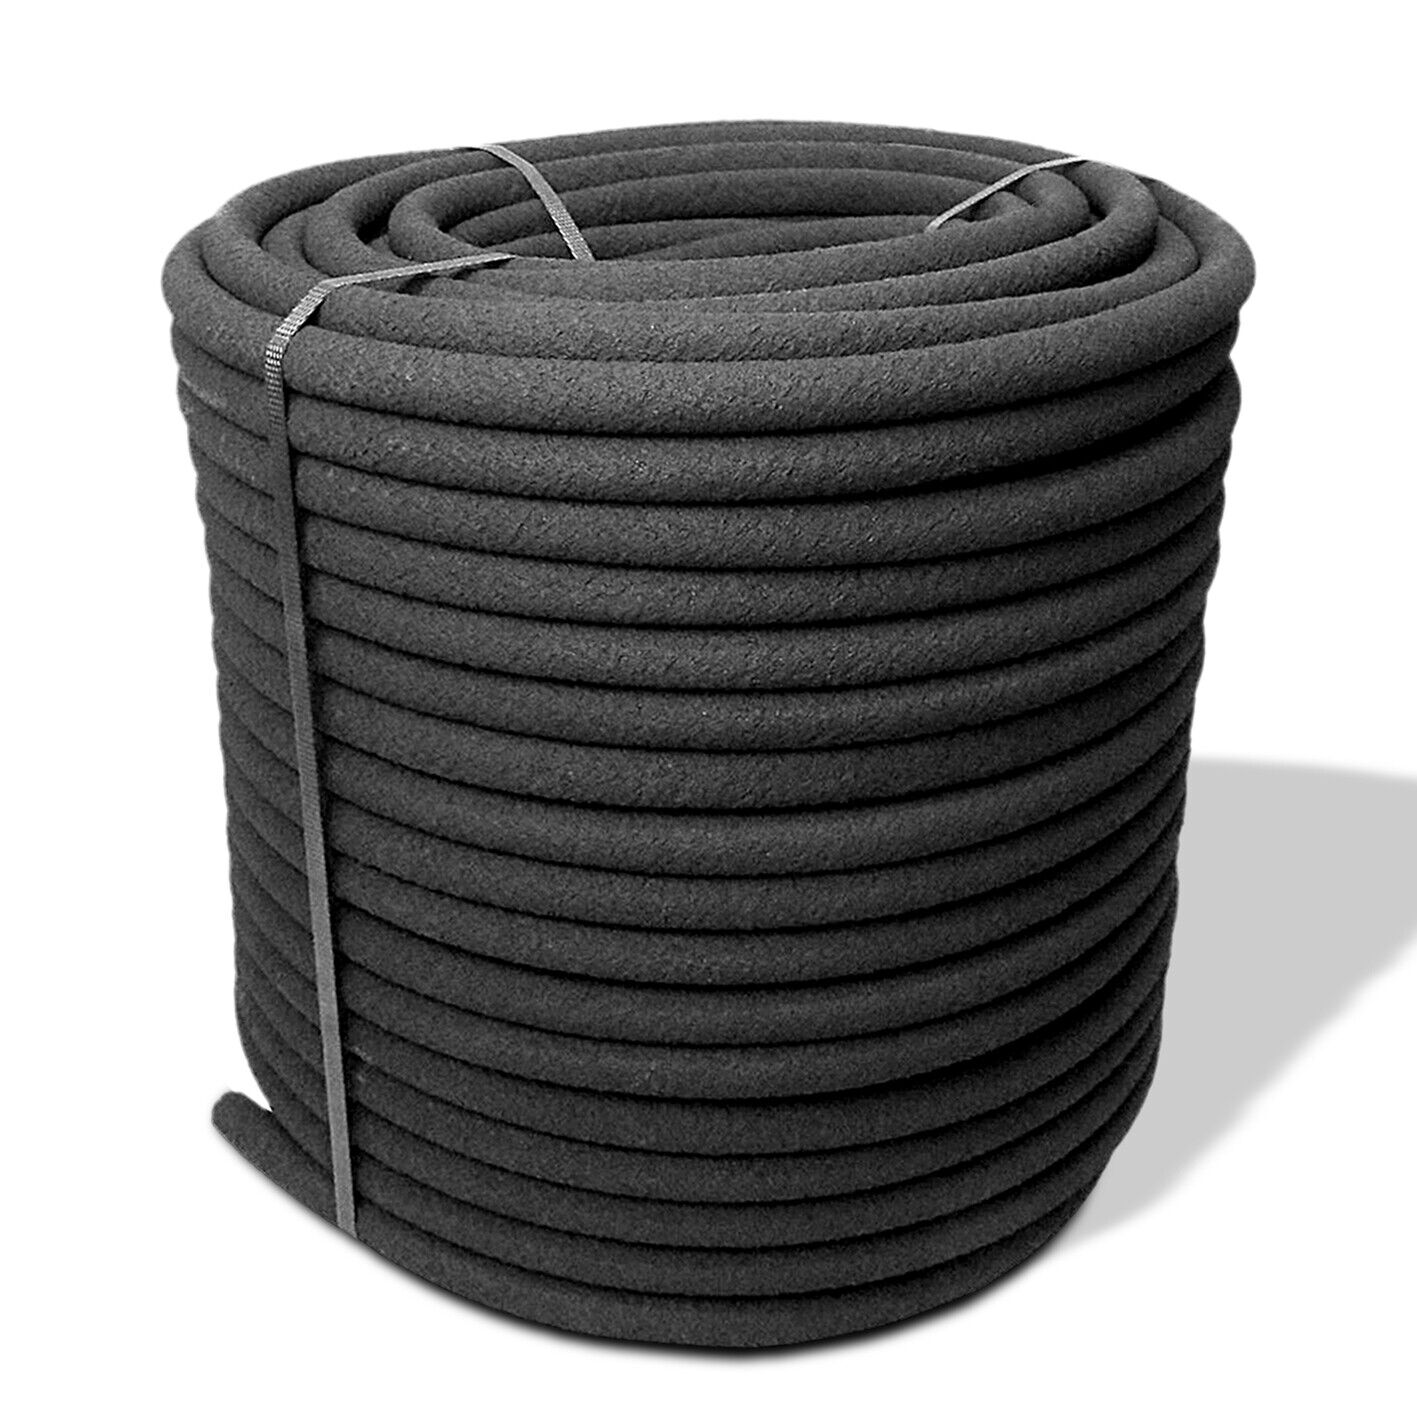 100m // SOAKER HOSE Leaky Pipe Garden Thick Wallet Irrigation System POROUS PIPE